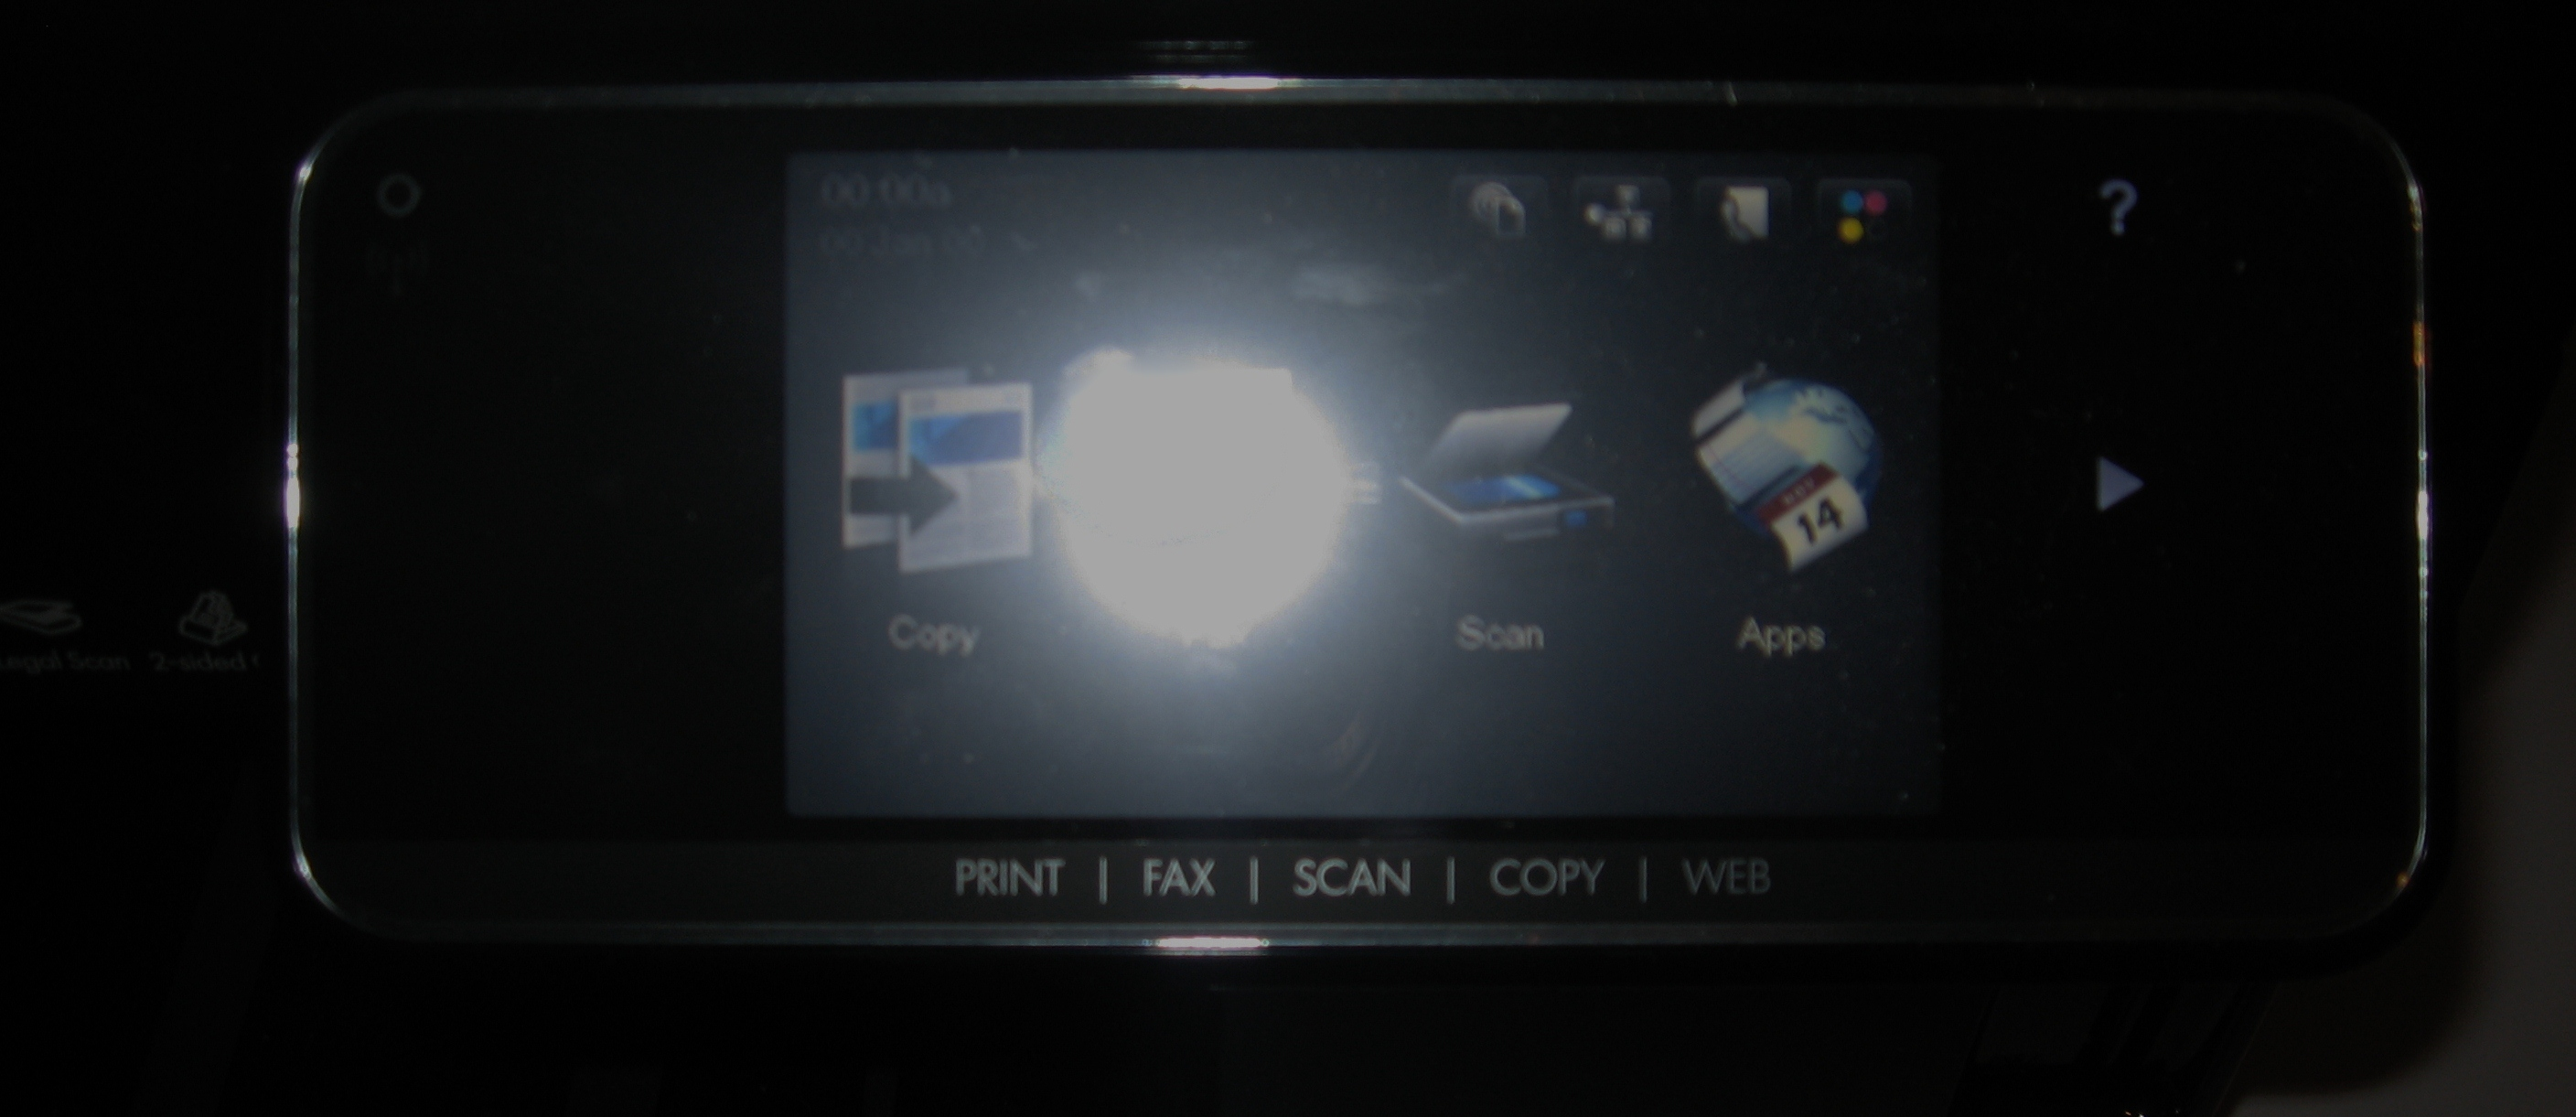 HP OfficeJet Pro 8500a Plus control panel